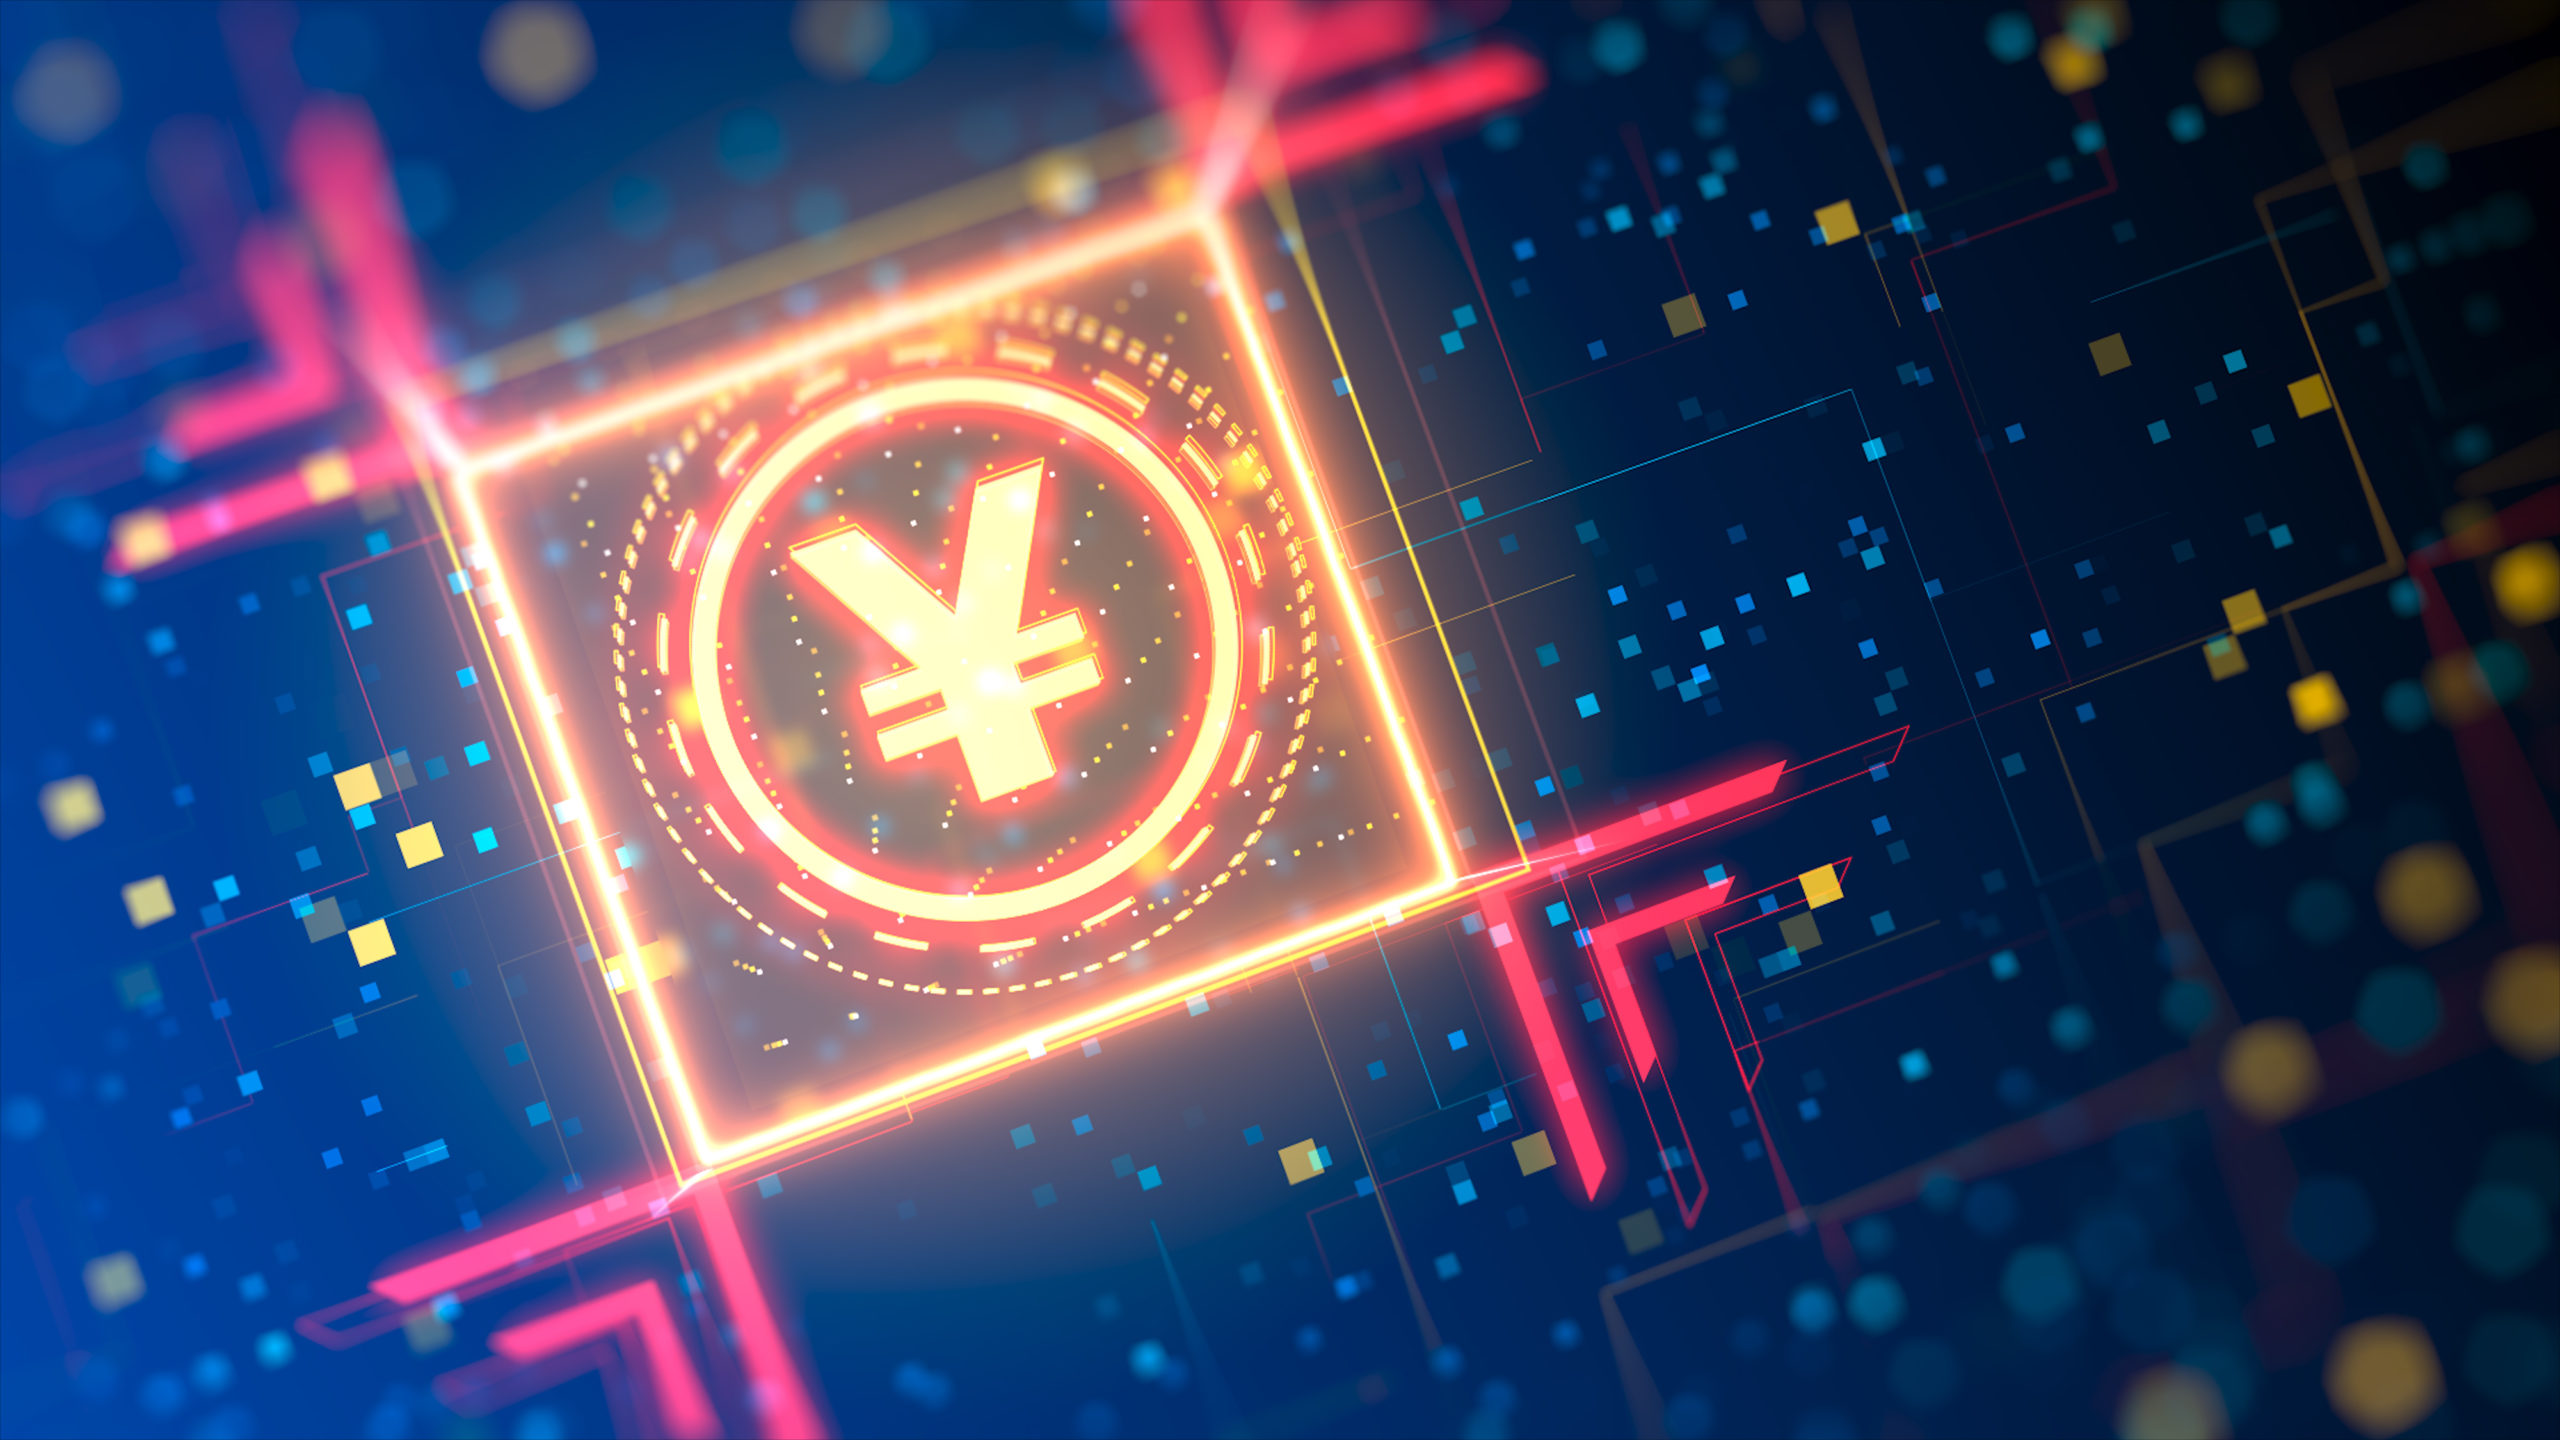 Use the new yuan cryptocurrency is faster and safer.